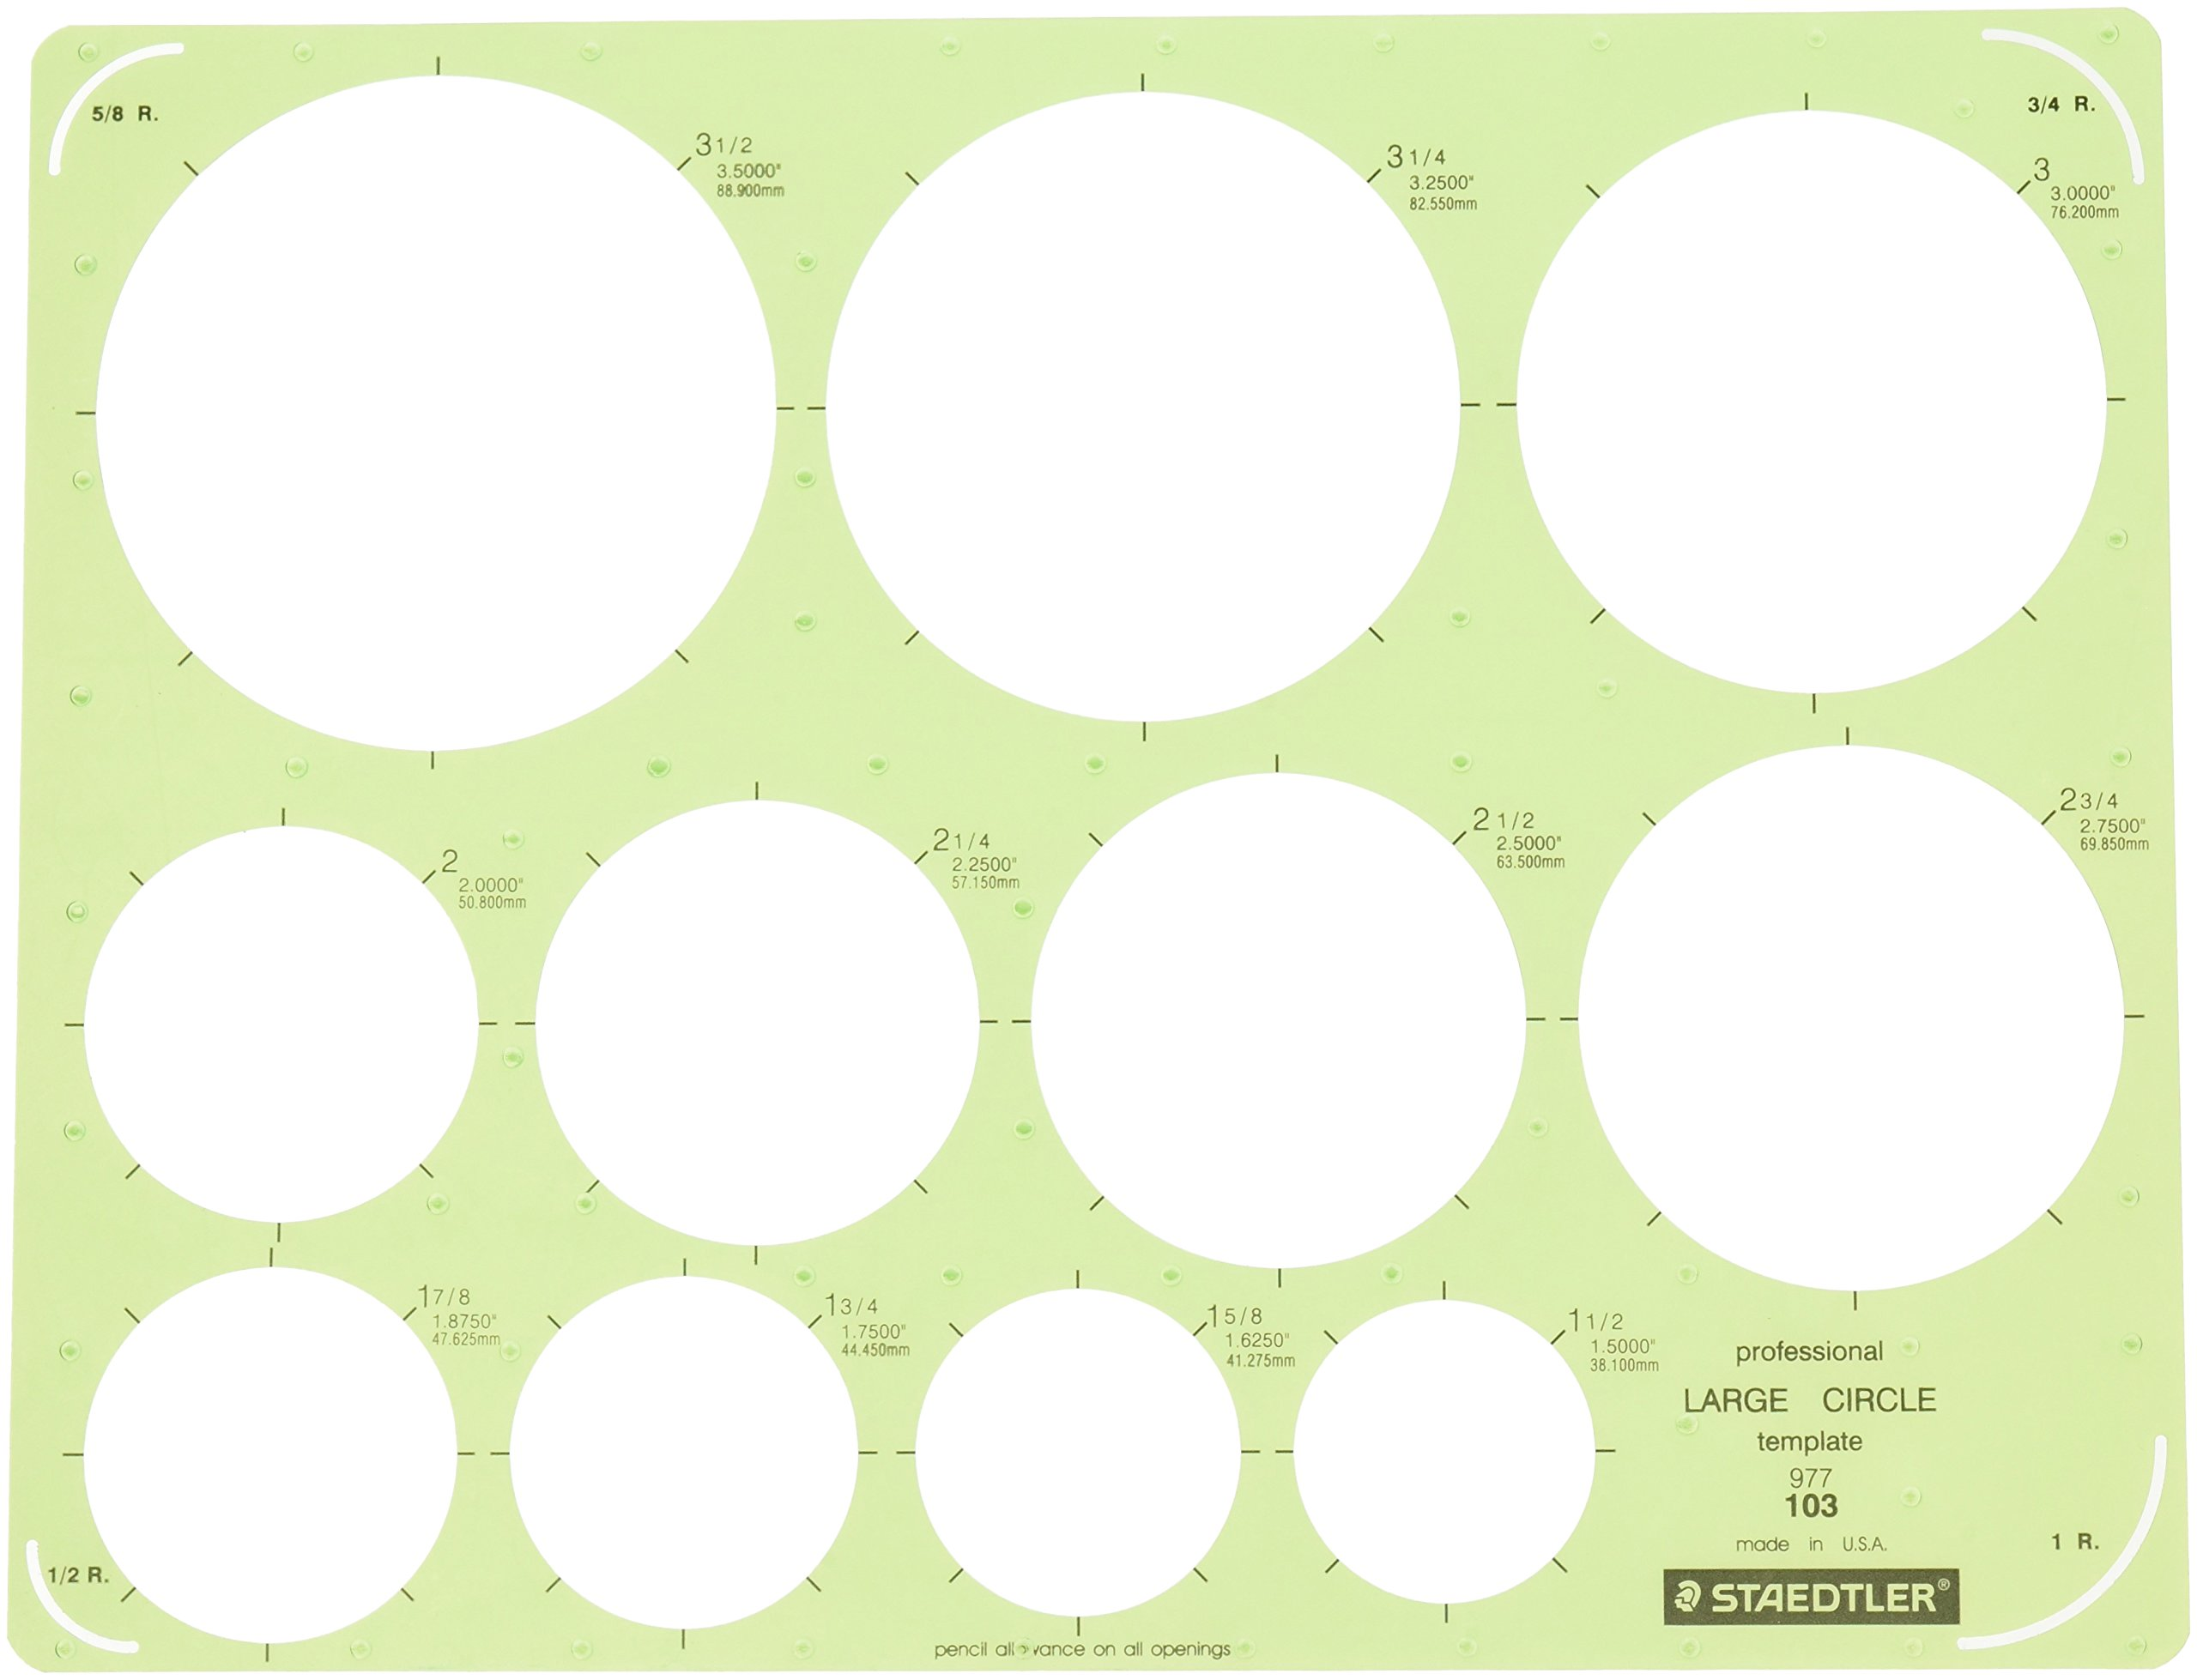 Staedtler Technical Drawing Template (977 103 NA) by STAEDTLER